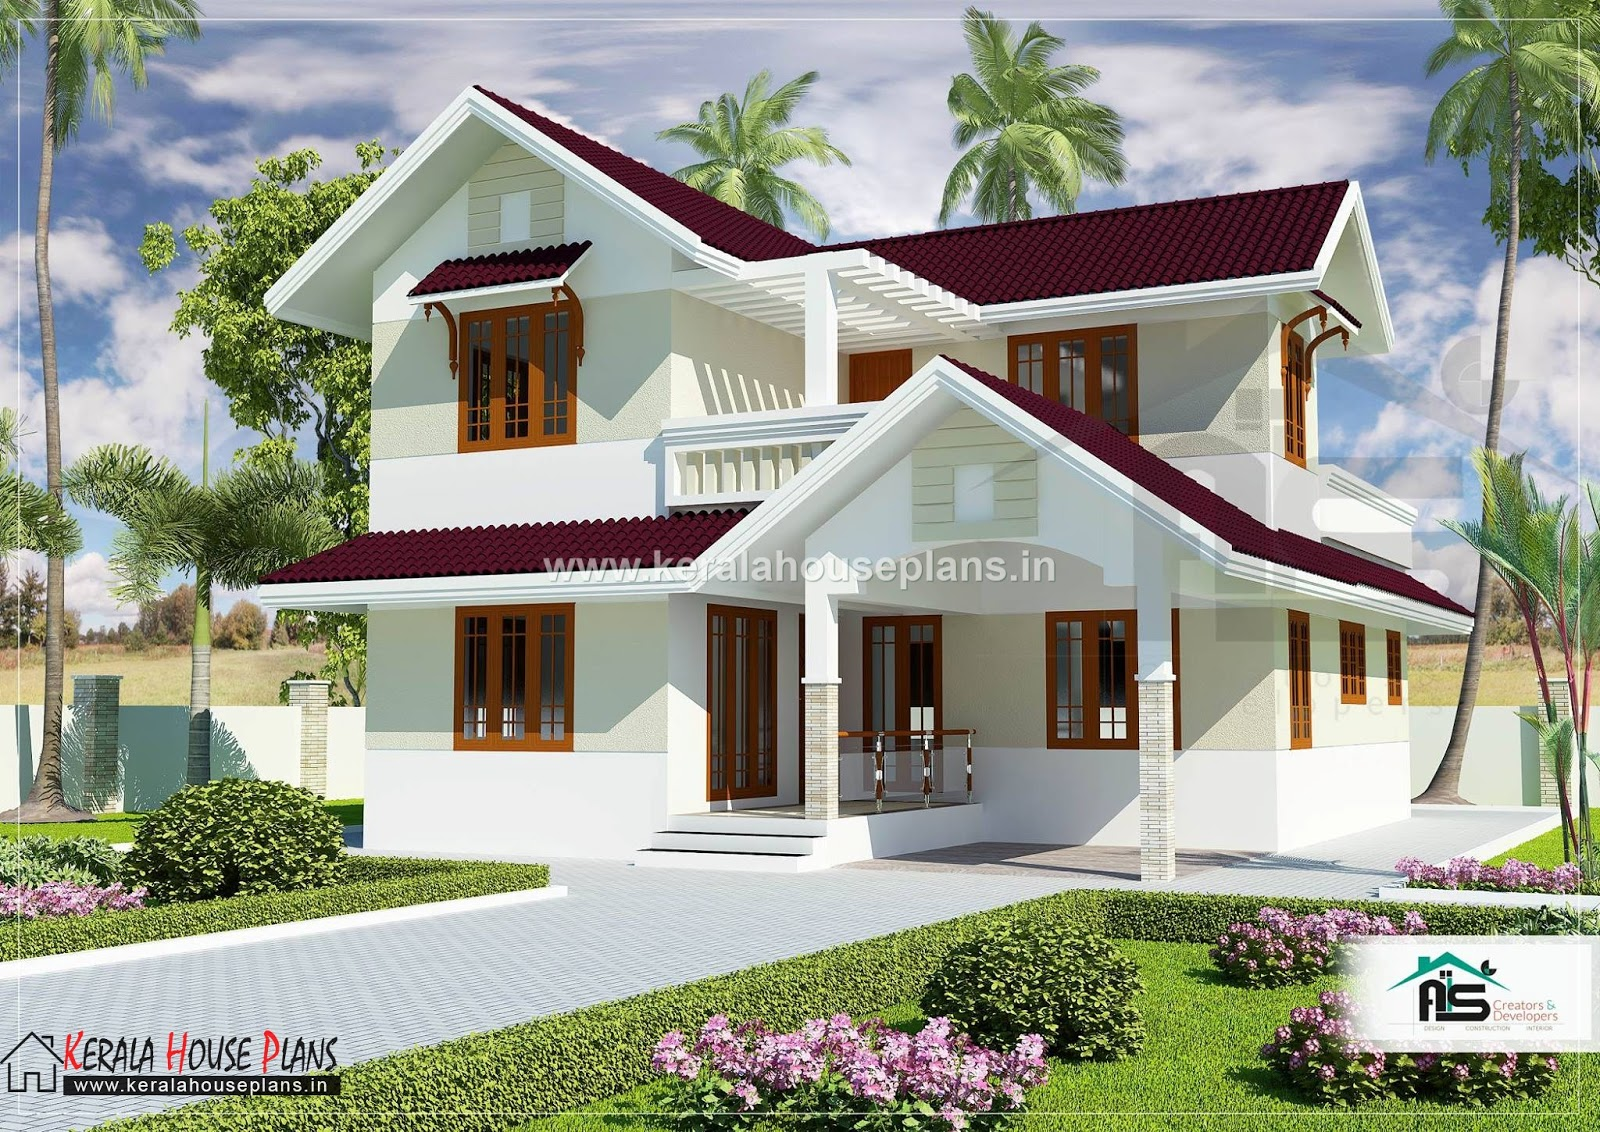 Kerala model house plans with elevation 1829 sqft kerala for House elevation models